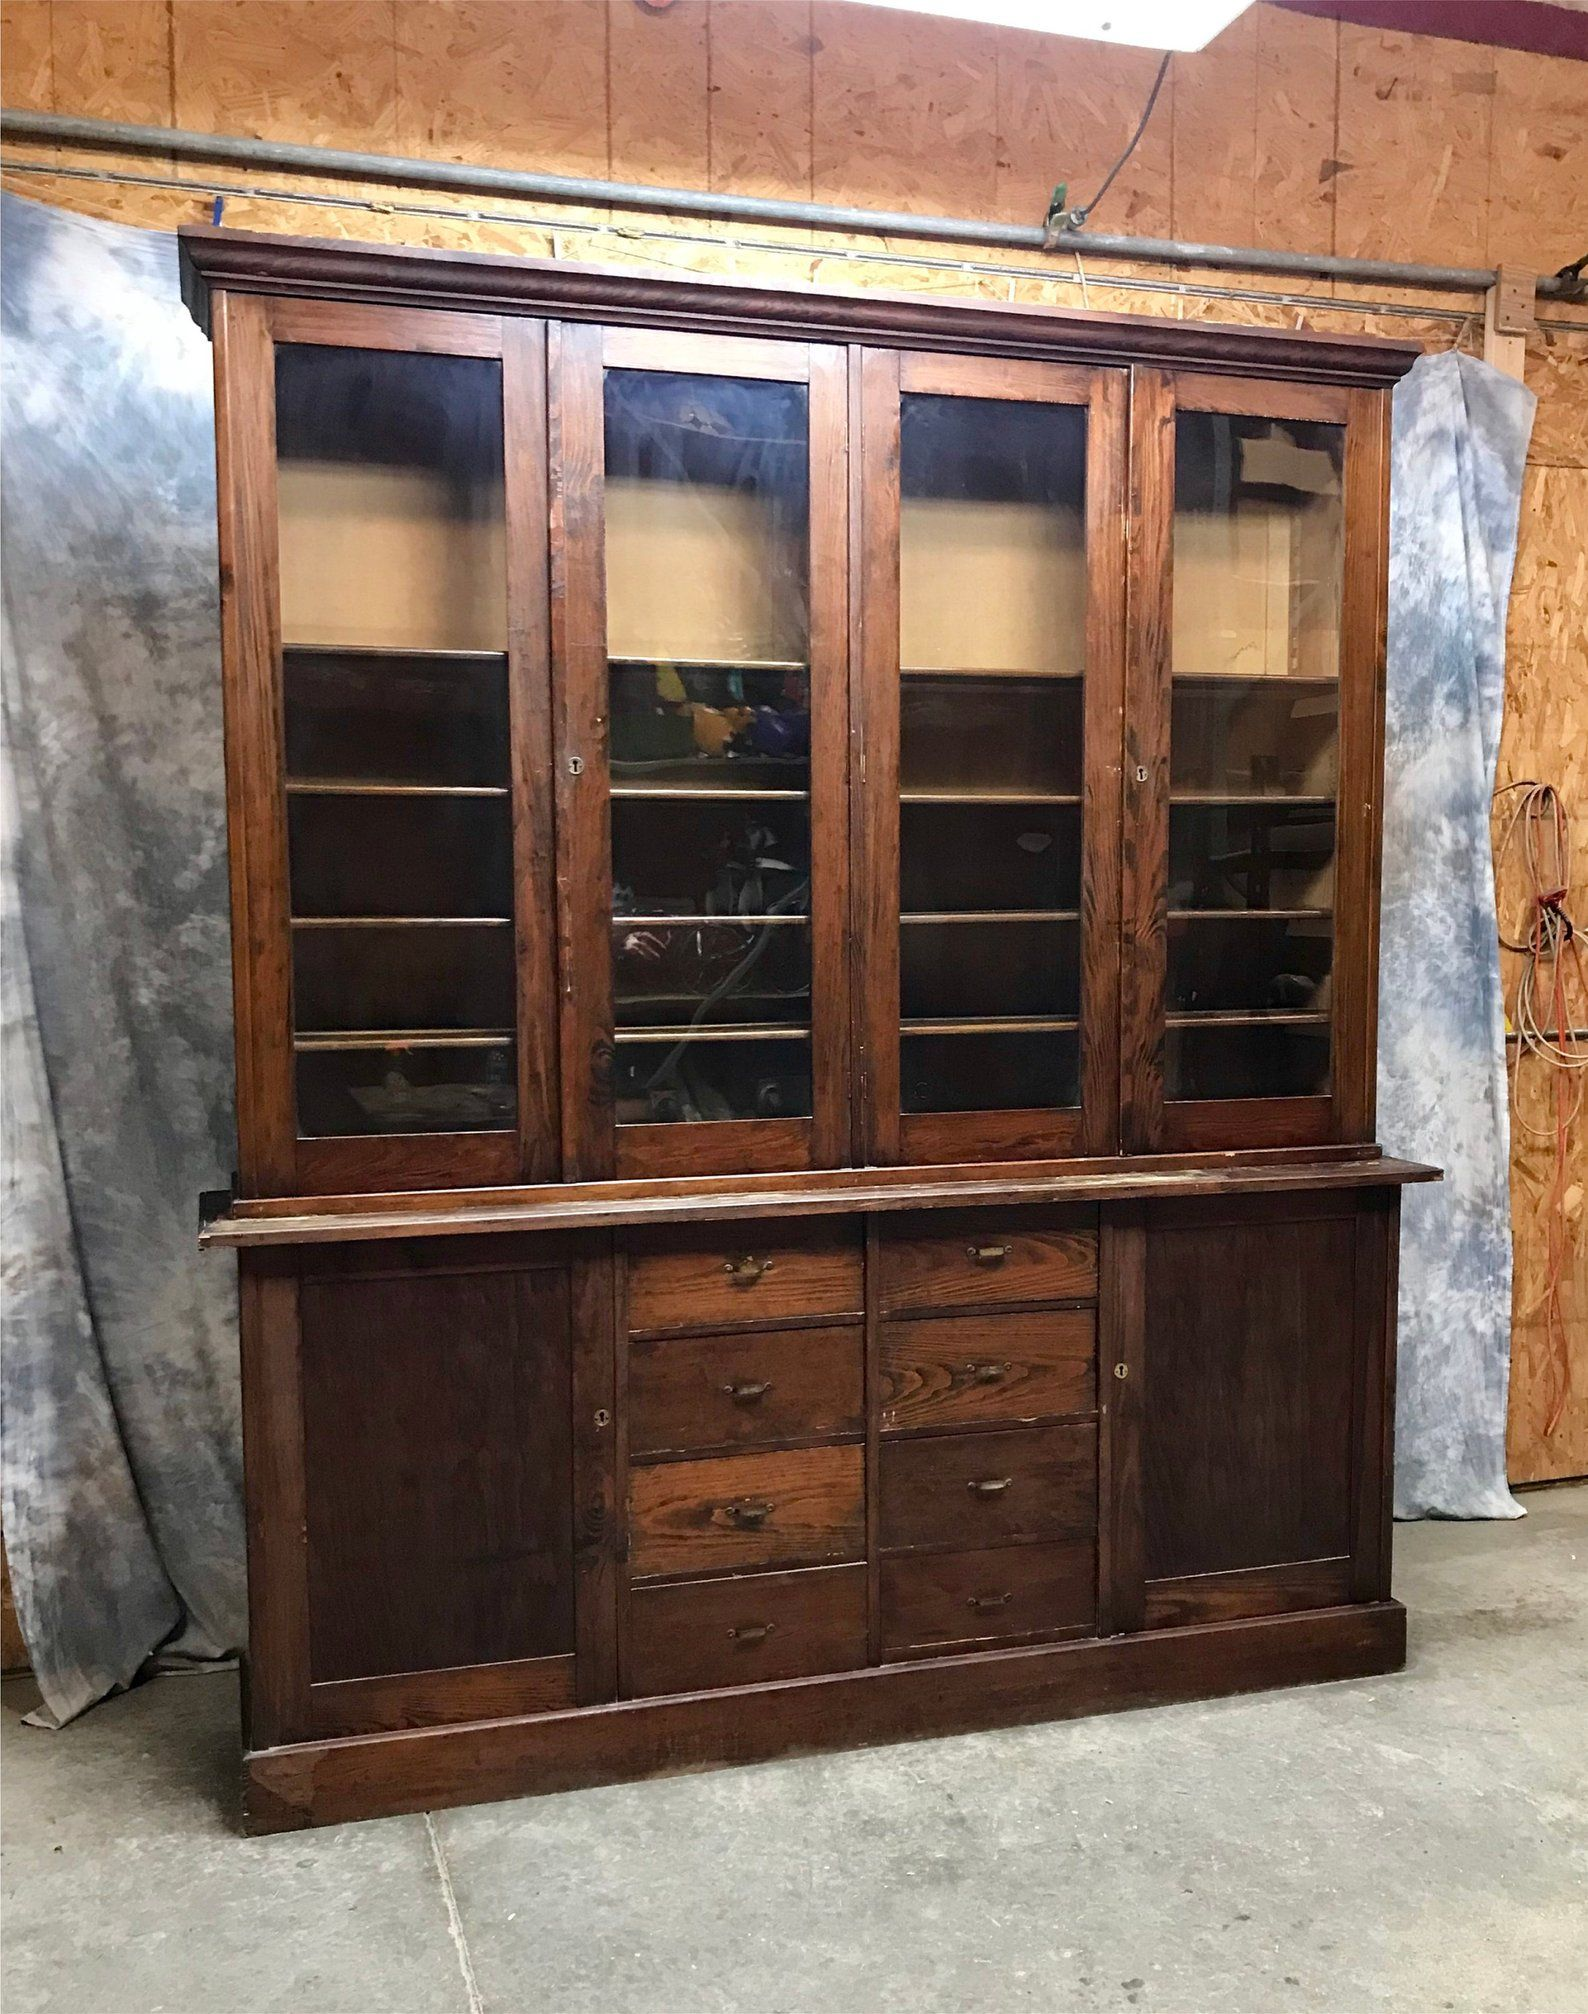 8 Antique Display Cabinet Gl Doors